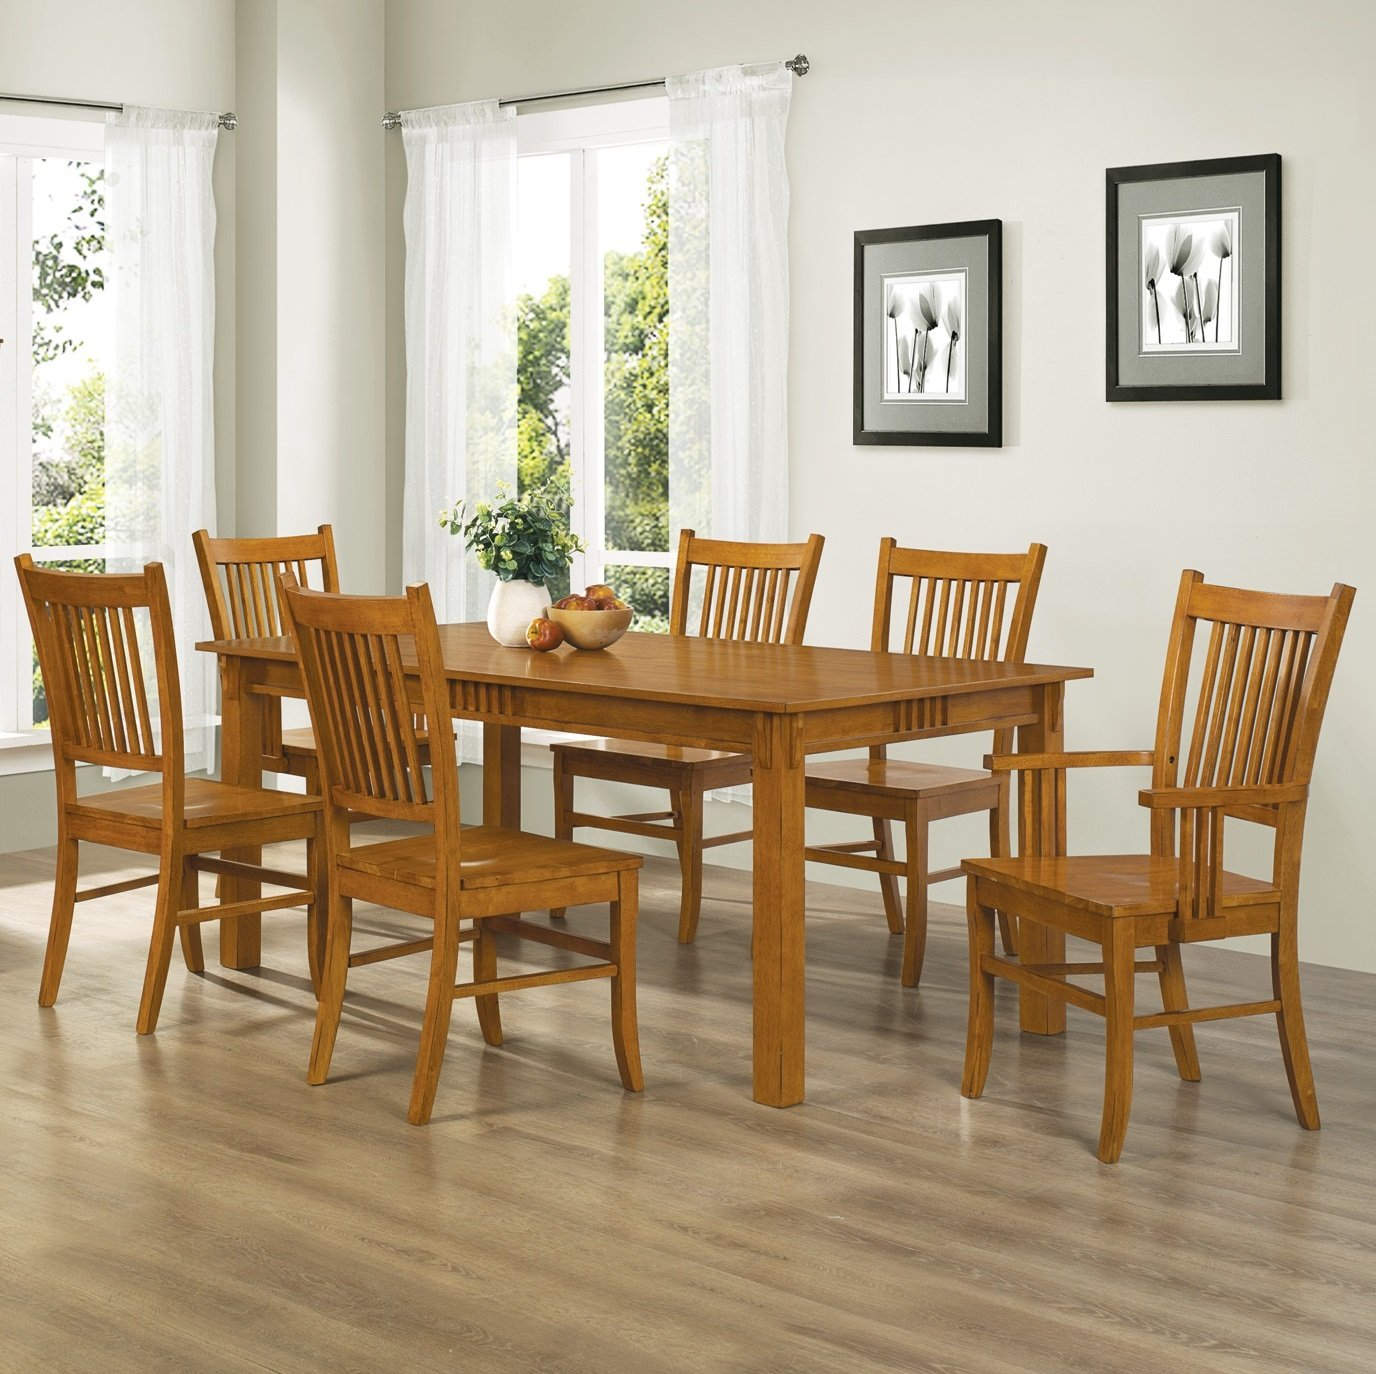 Super Coaster Home Furnishings 7 Piece Mission Style Solid Hardwood Dining Table Chairs Set Download Free Architecture Designs Grimeyleaguecom